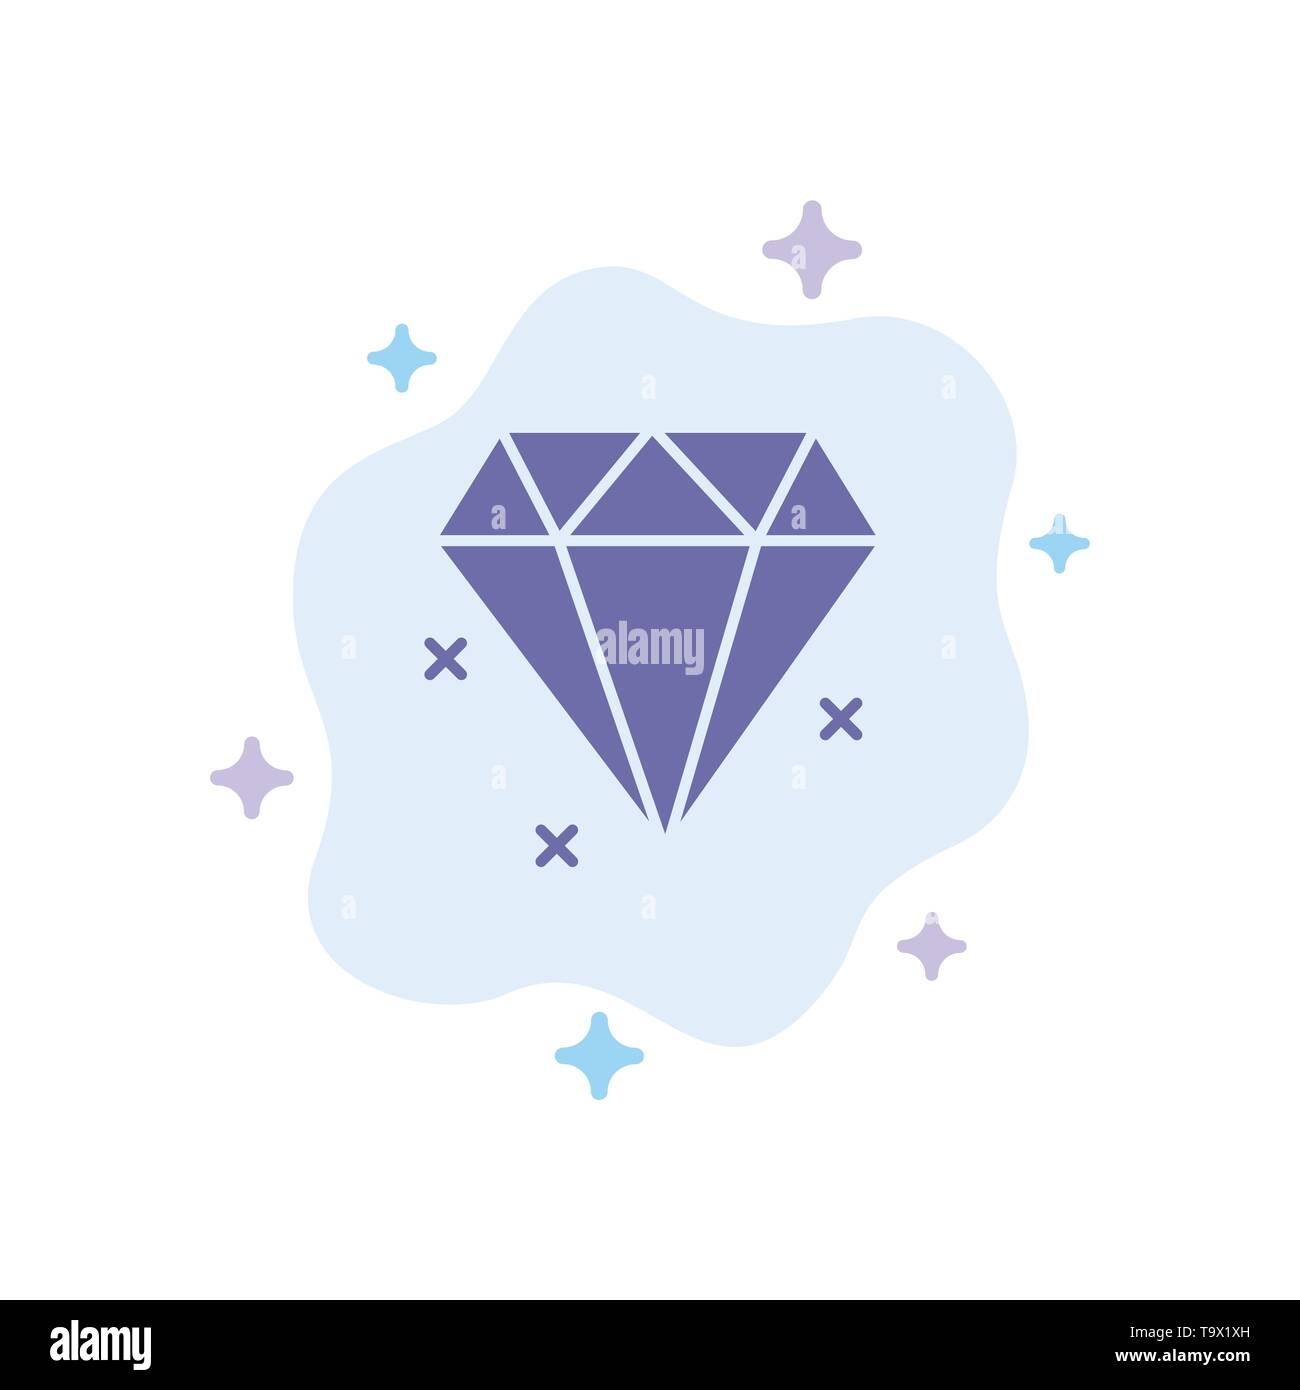 Diamond, Jewelry Blue Icon on Abstract Cloud Background - Stock Image